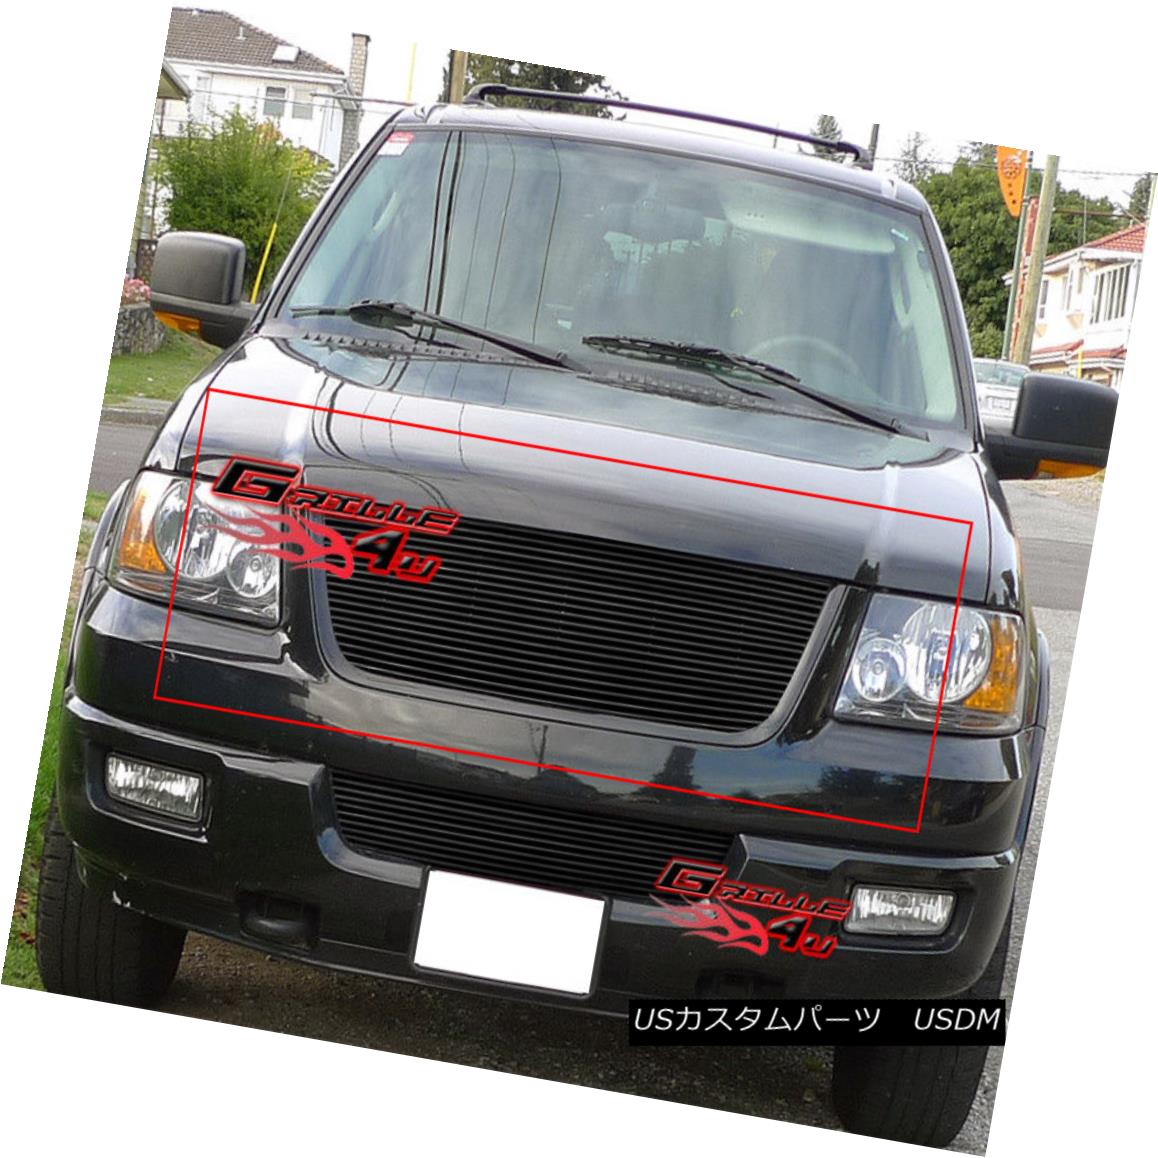 グリル Fits 2003-2006 Ford Expedition Black Main Upper Billet Grille Insert 2003-2006 Ford Expedition Blackメインアッパービレットグリルインサート